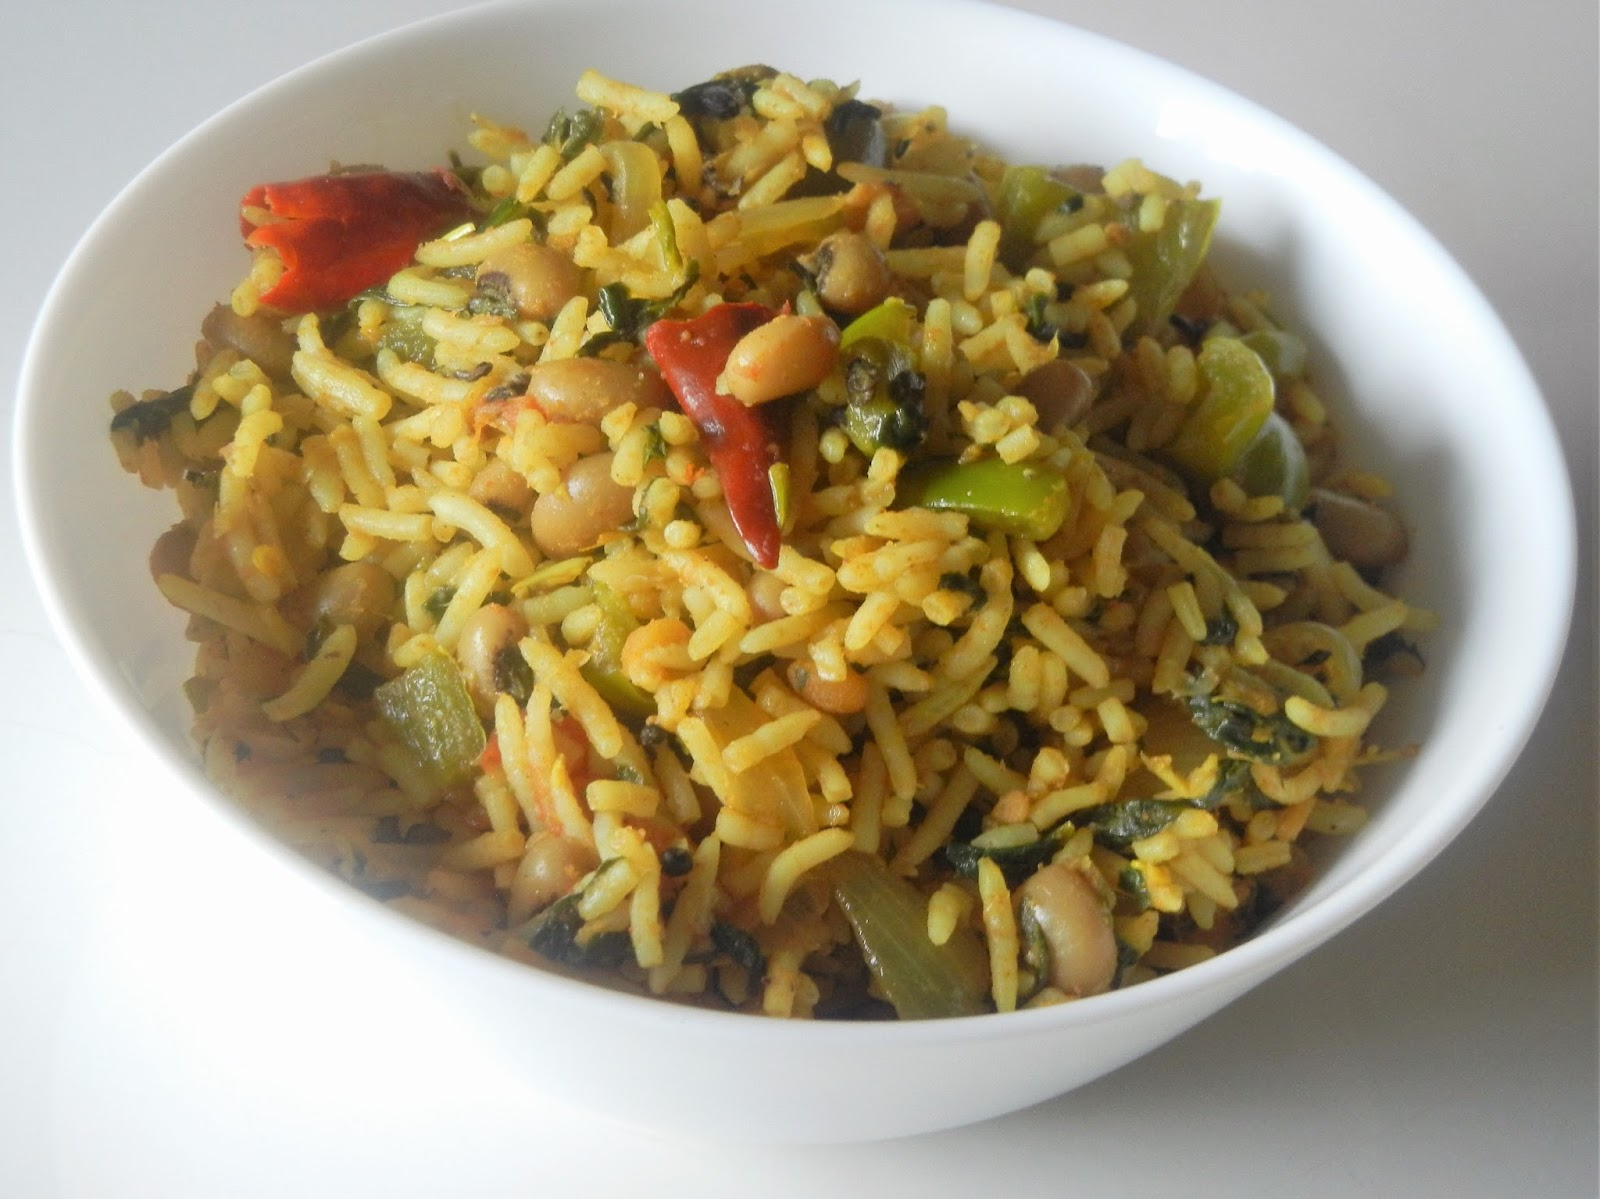 Gitas kitchen a blog for indian diabetic recipes and healthy spinach and black eyed peas tomato rice forumfinder Images